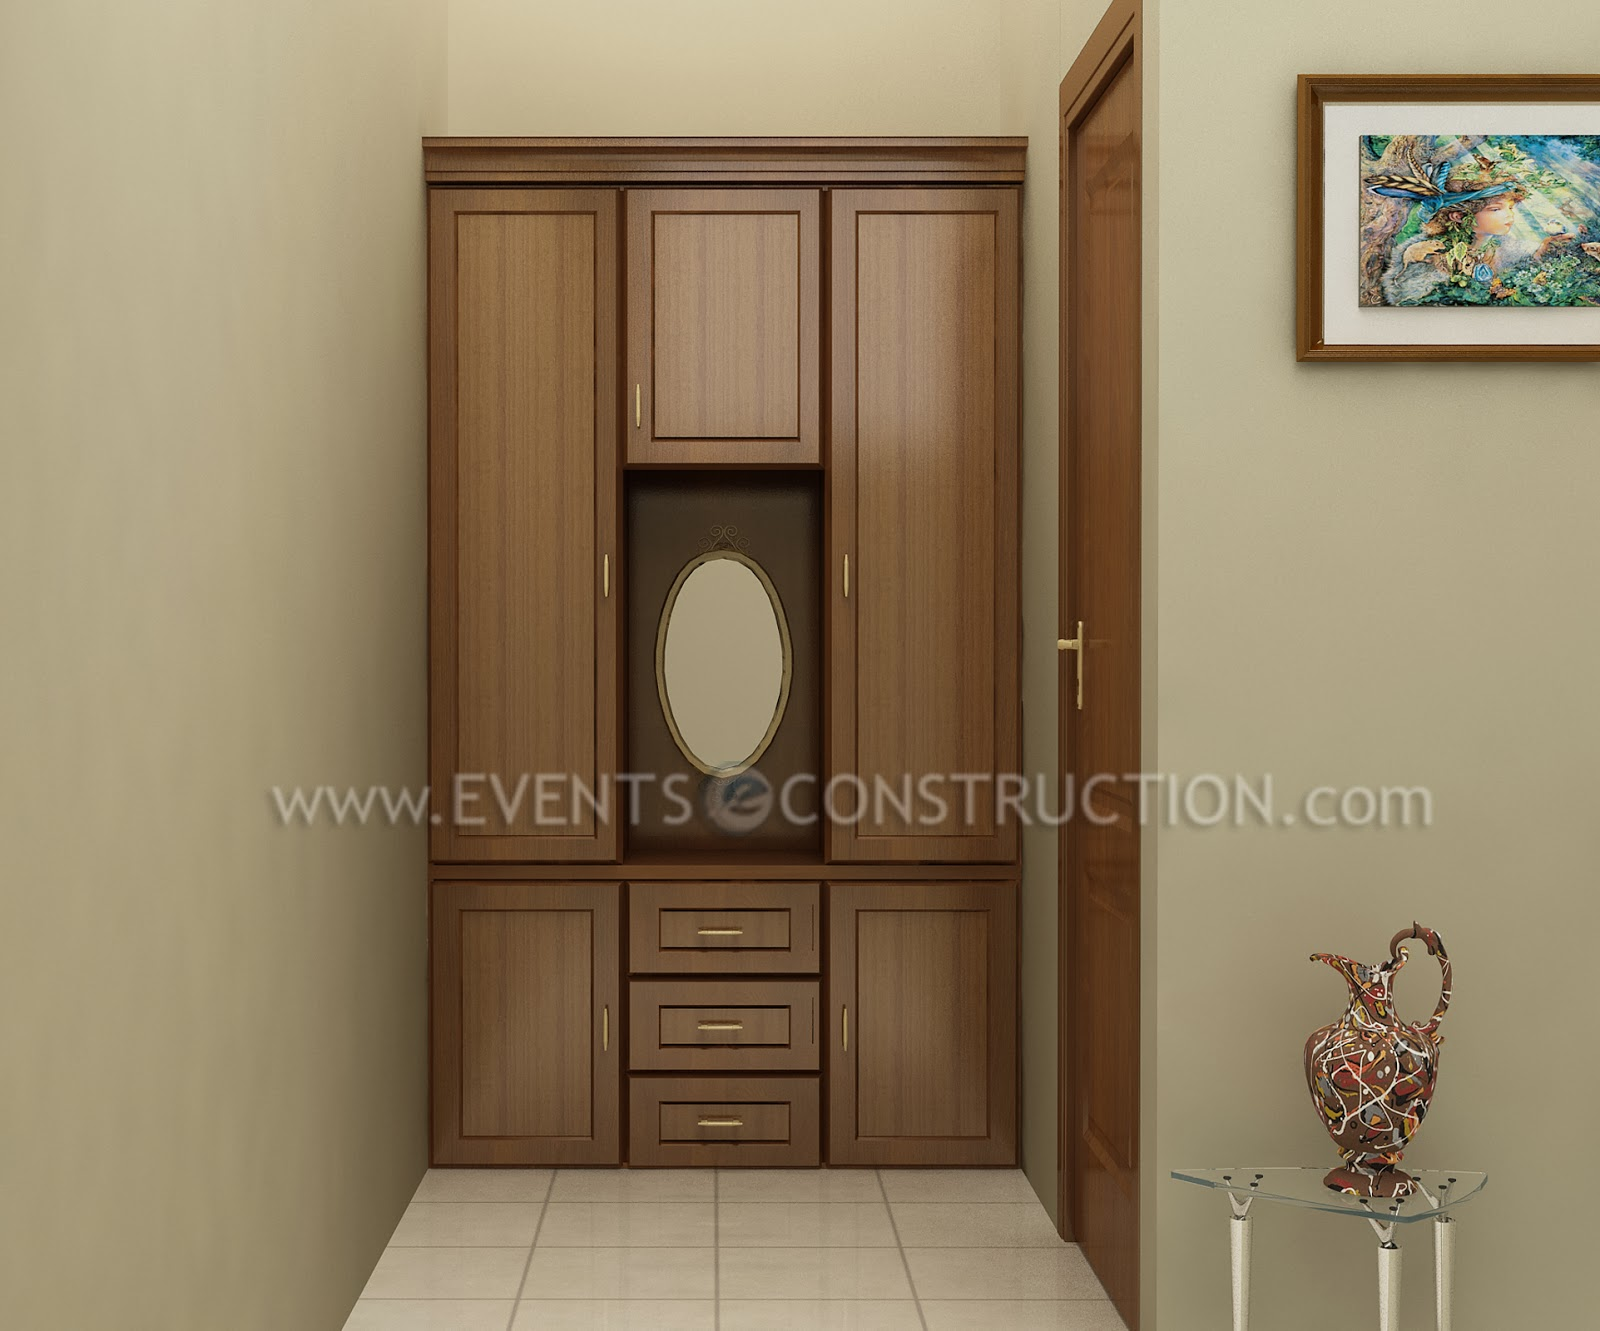 Evens construction pvt ltd dressing area with wardrobe for Dressing area designs